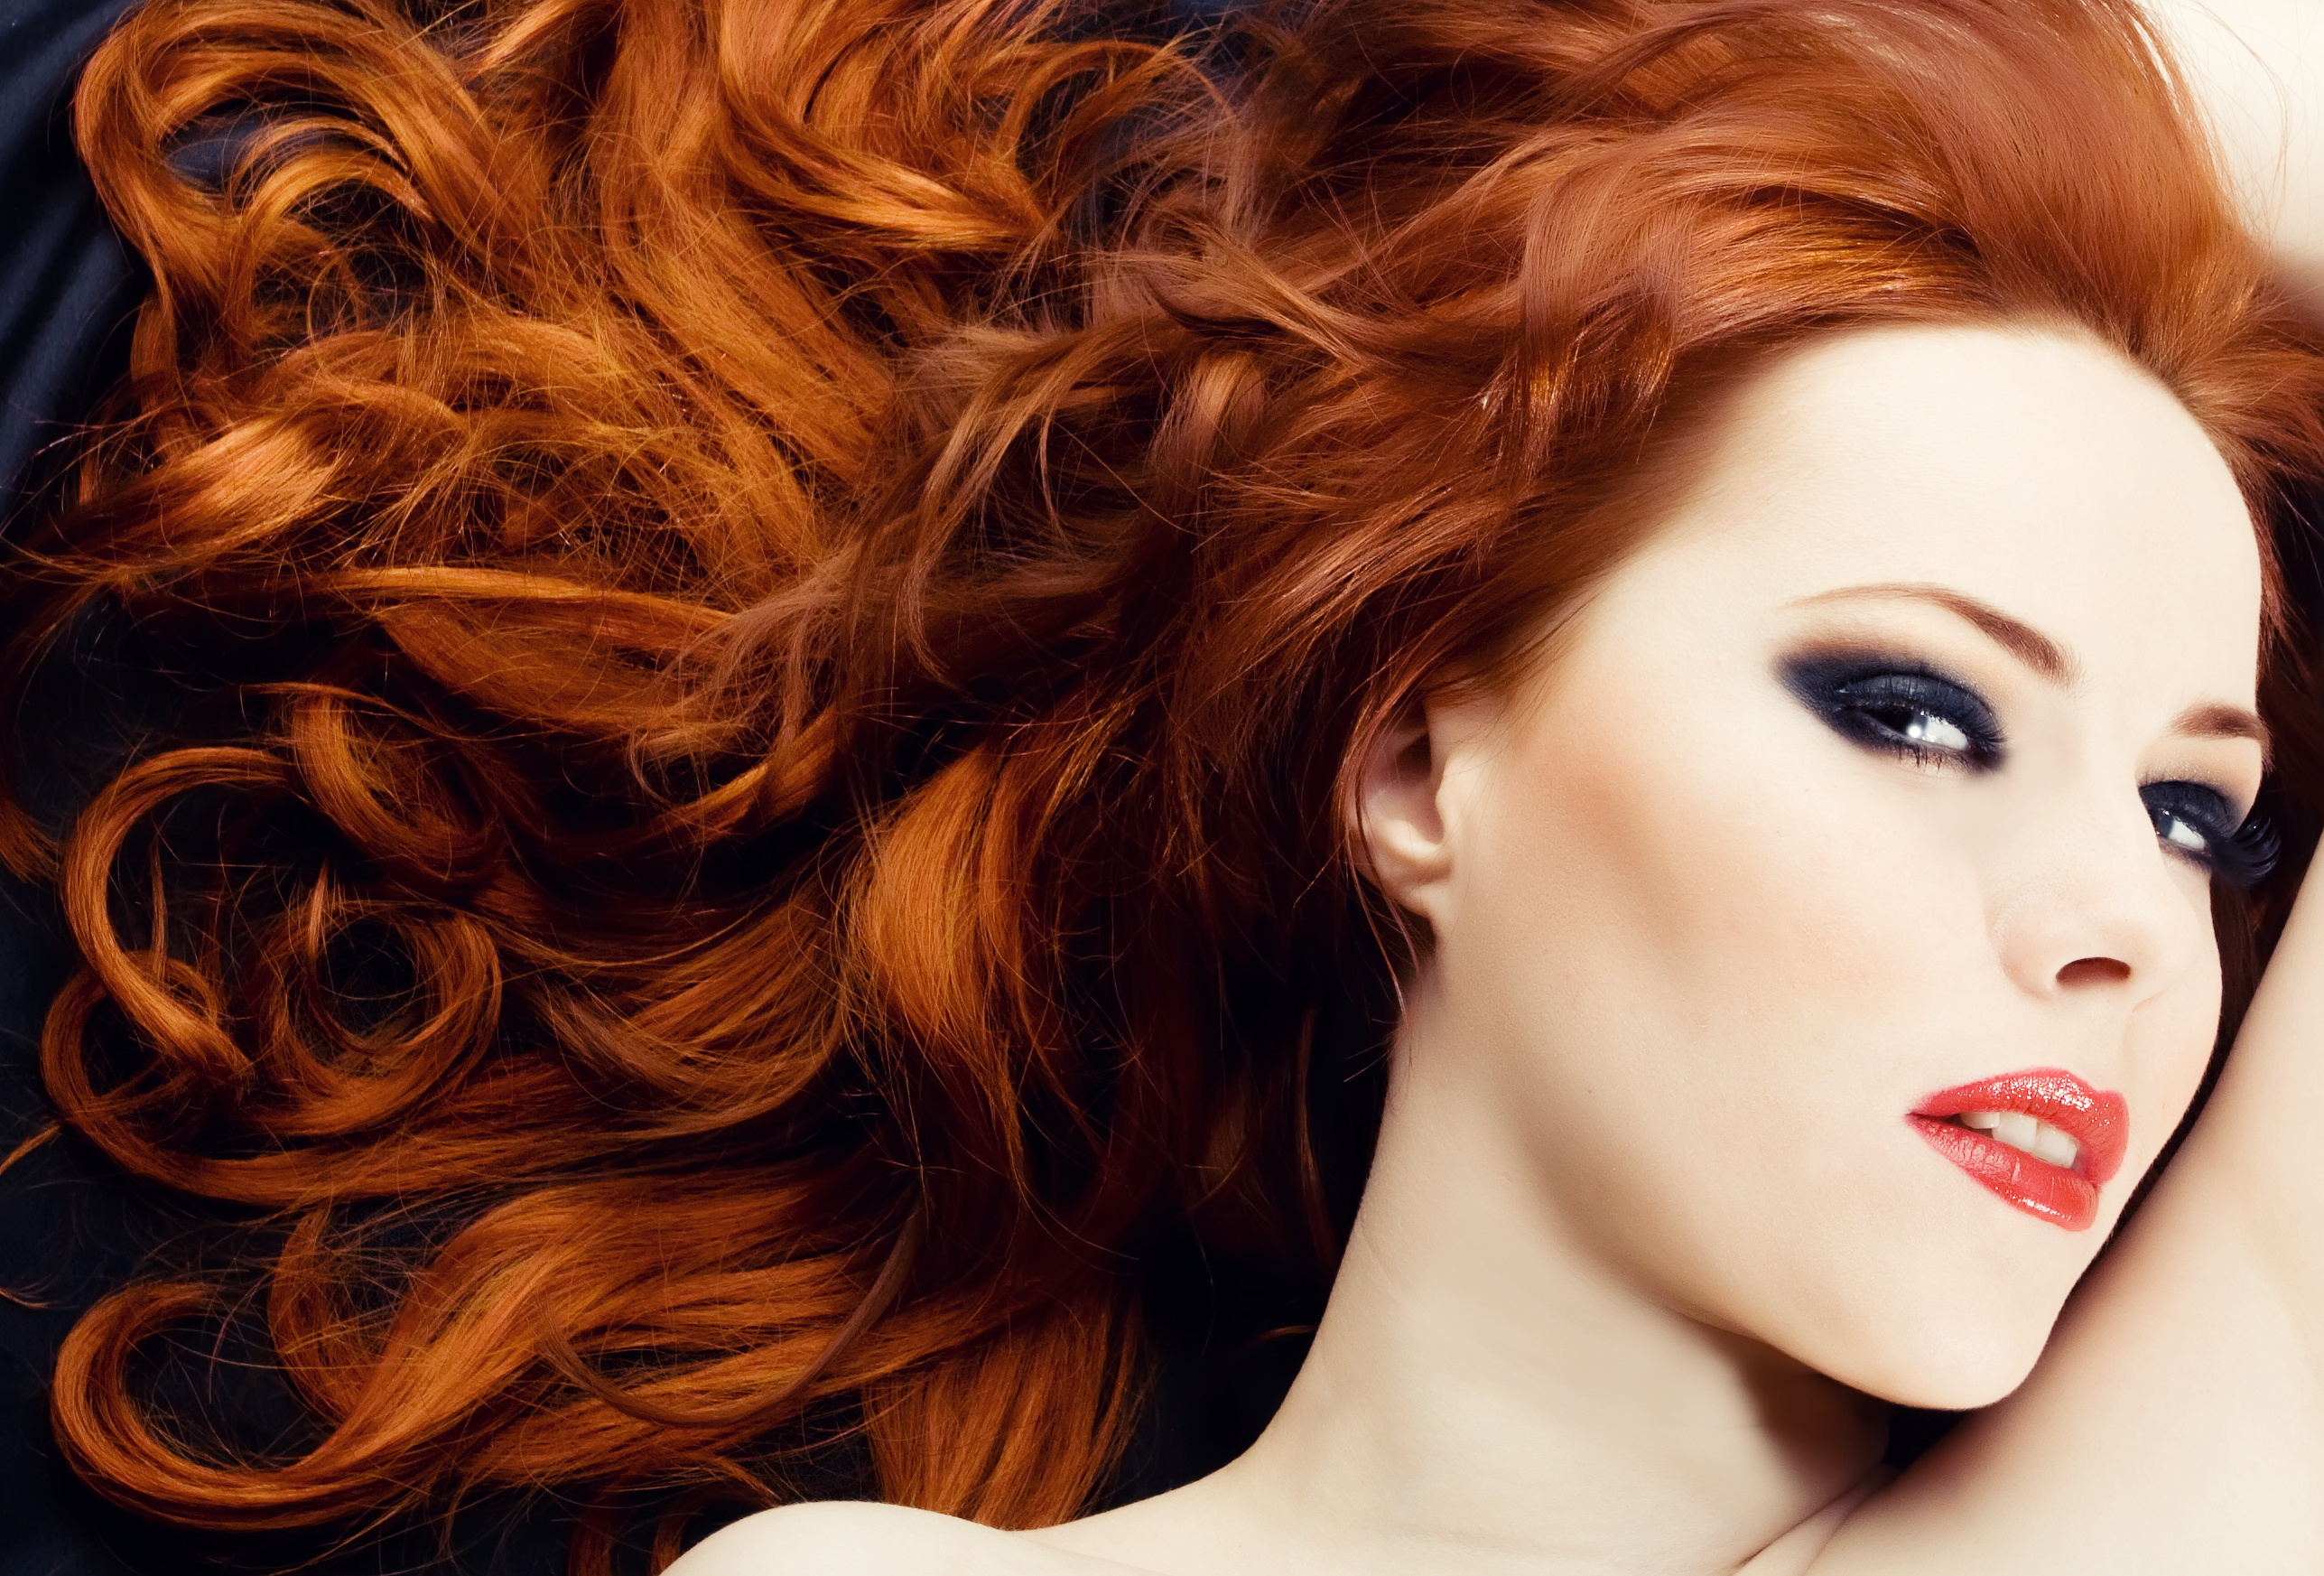 How To Choose The Ideal Hair Color For Your Skin Tone Con Estilo Tv Entertainment News Fashion